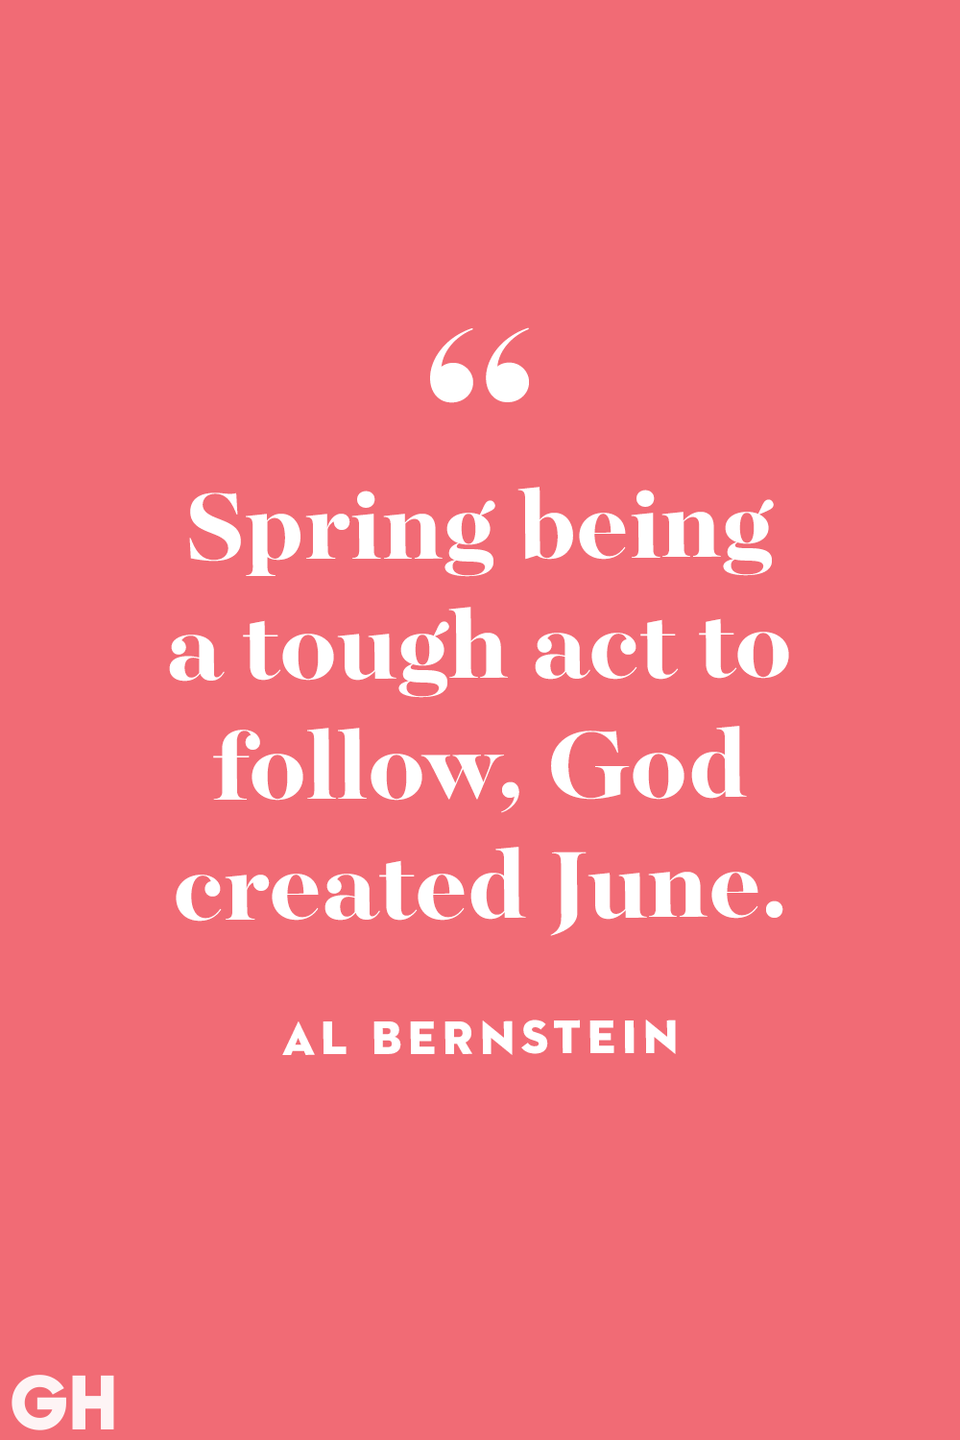 <p>Spring being a tough act to follow, God created June.</p>